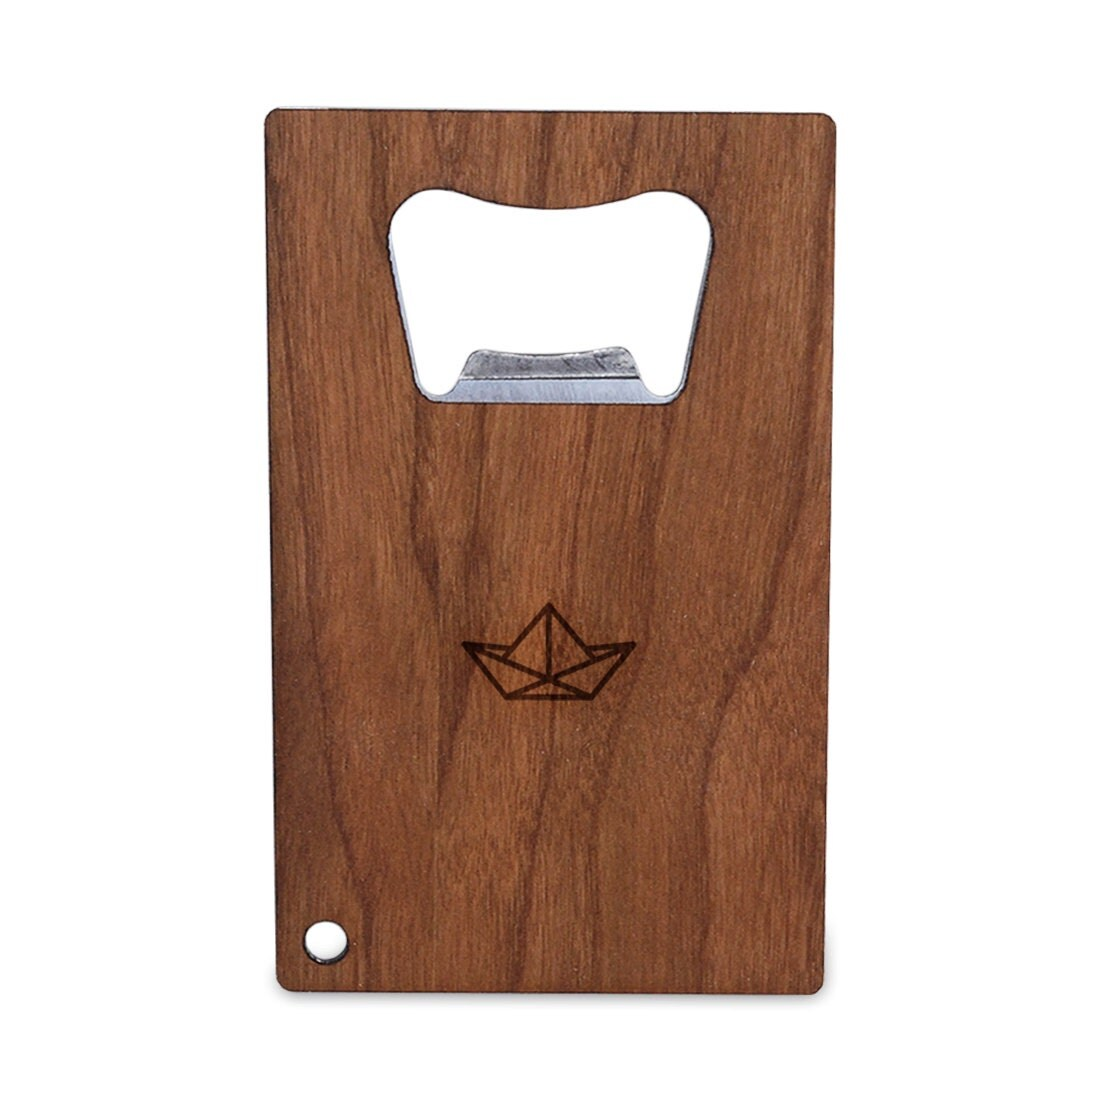 origami boat bottle opener with wood stainless steel credit. Black Bedroom Furniture Sets. Home Design Ideas